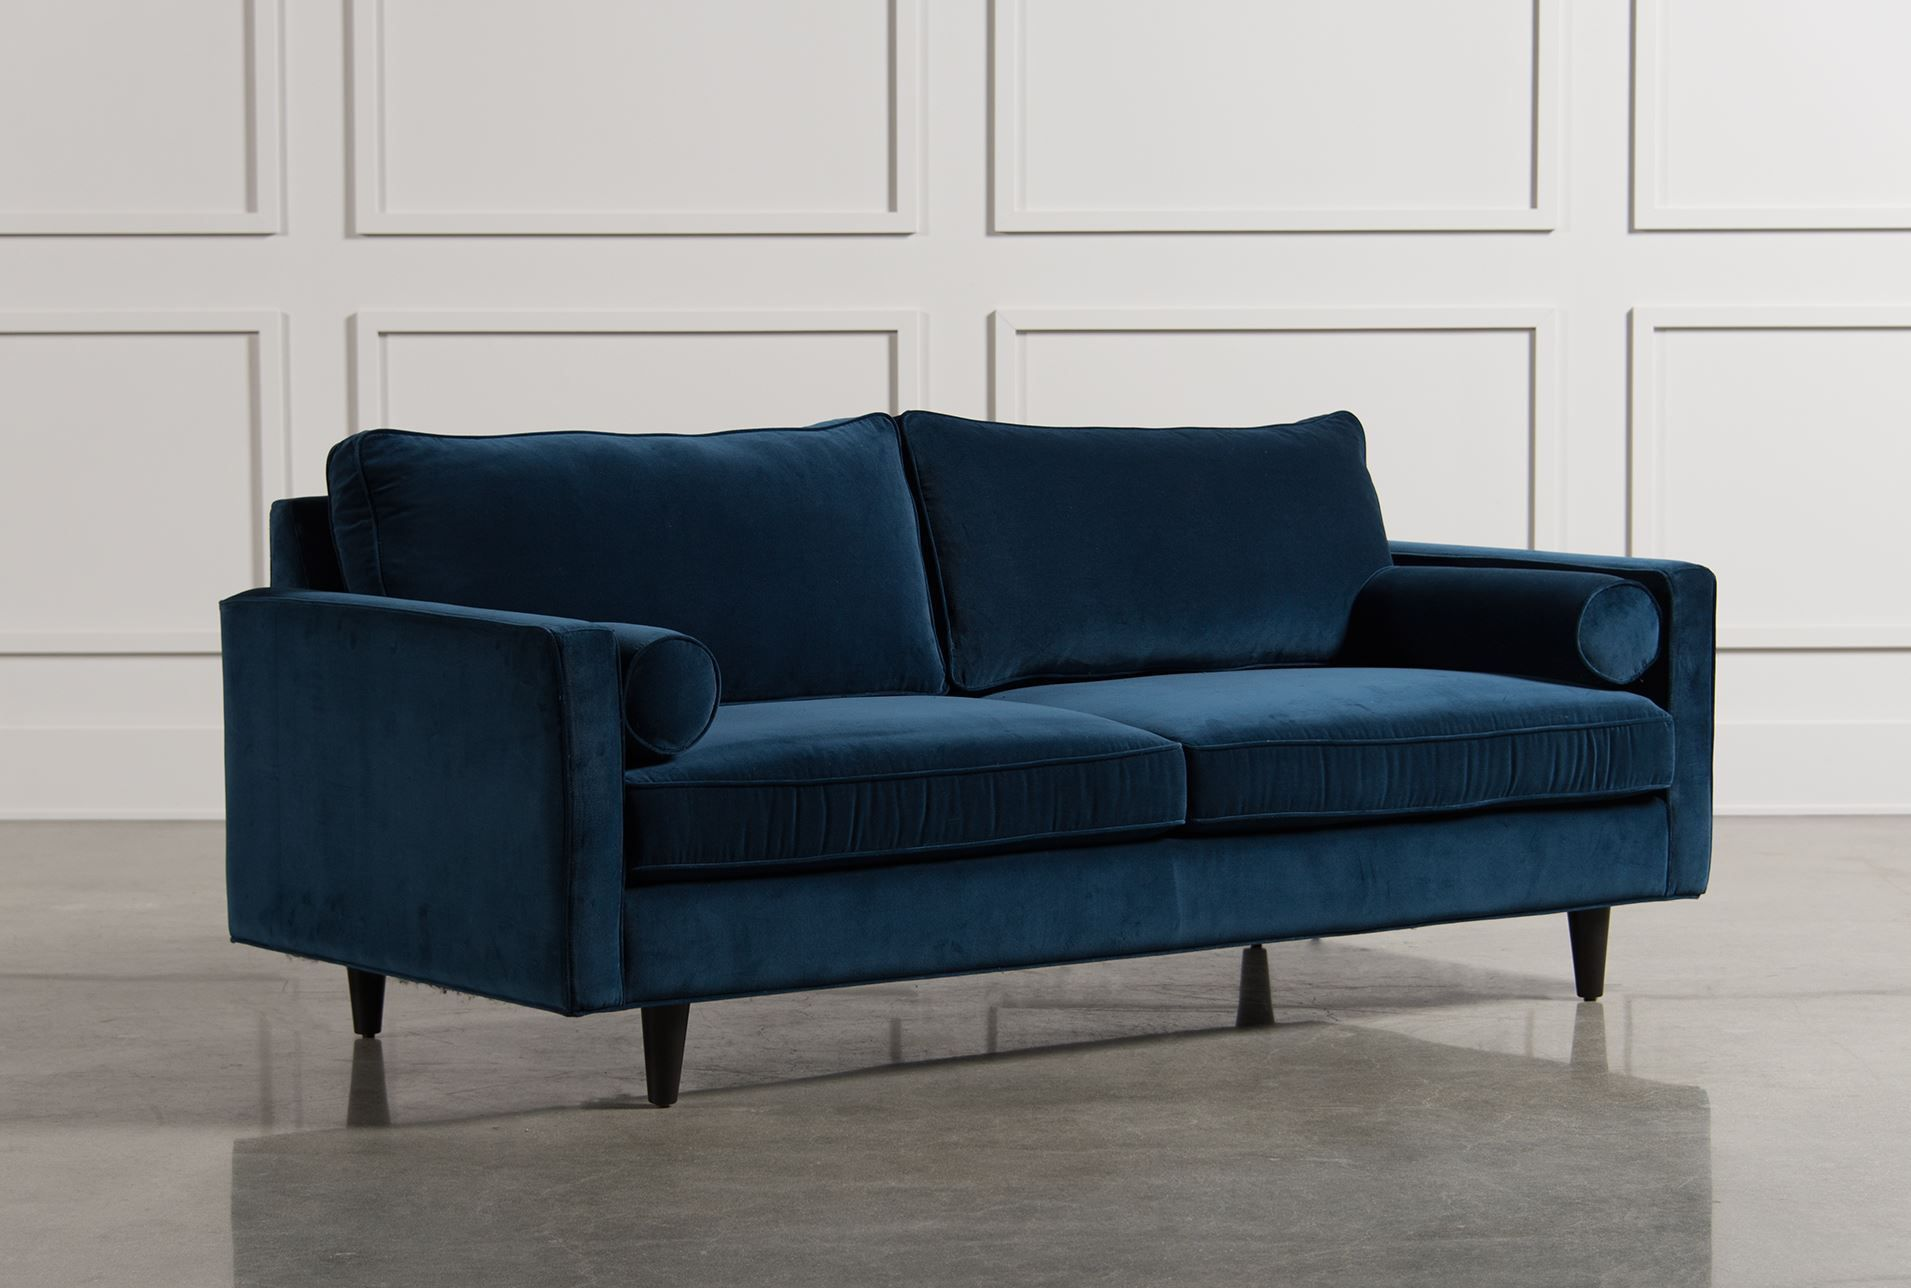 $795 velvet great reviews deep not too high Remington Sofa